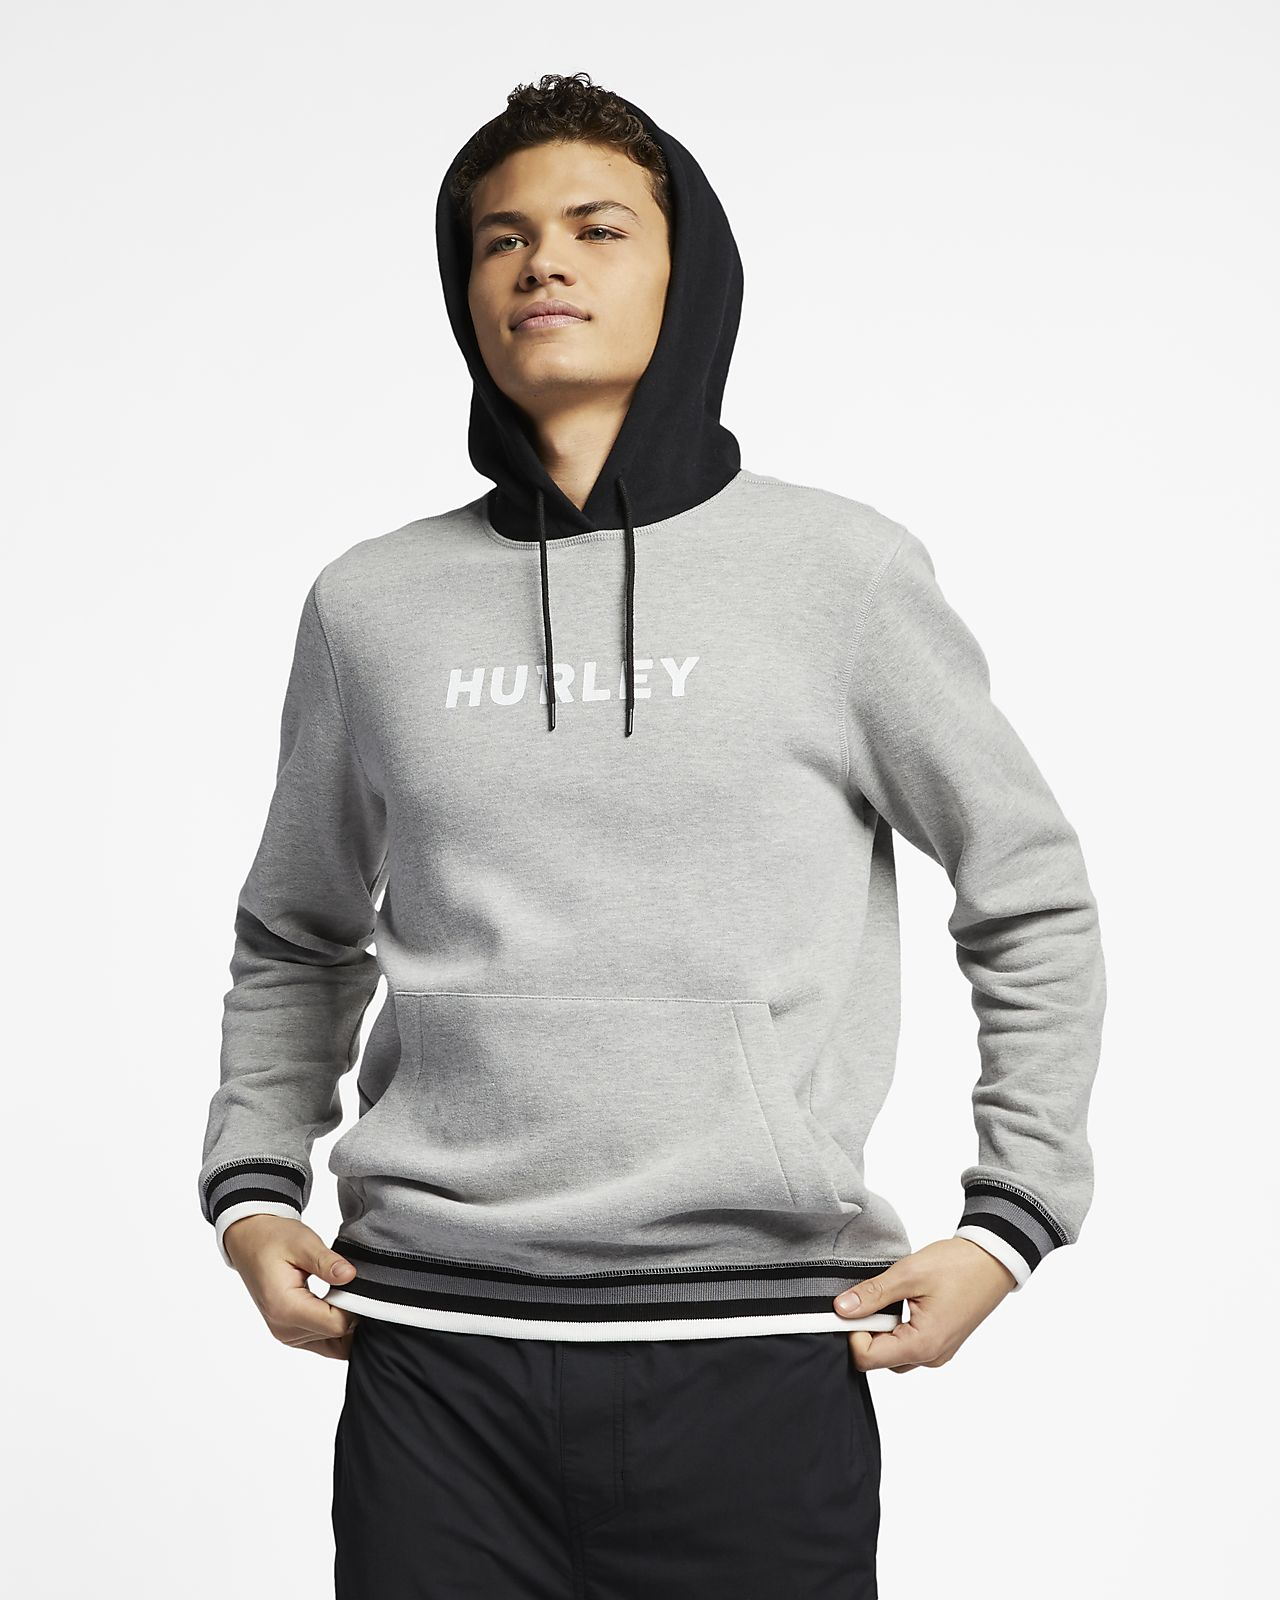 Hurley East Coast Men's Fleece Pullover Hoodie